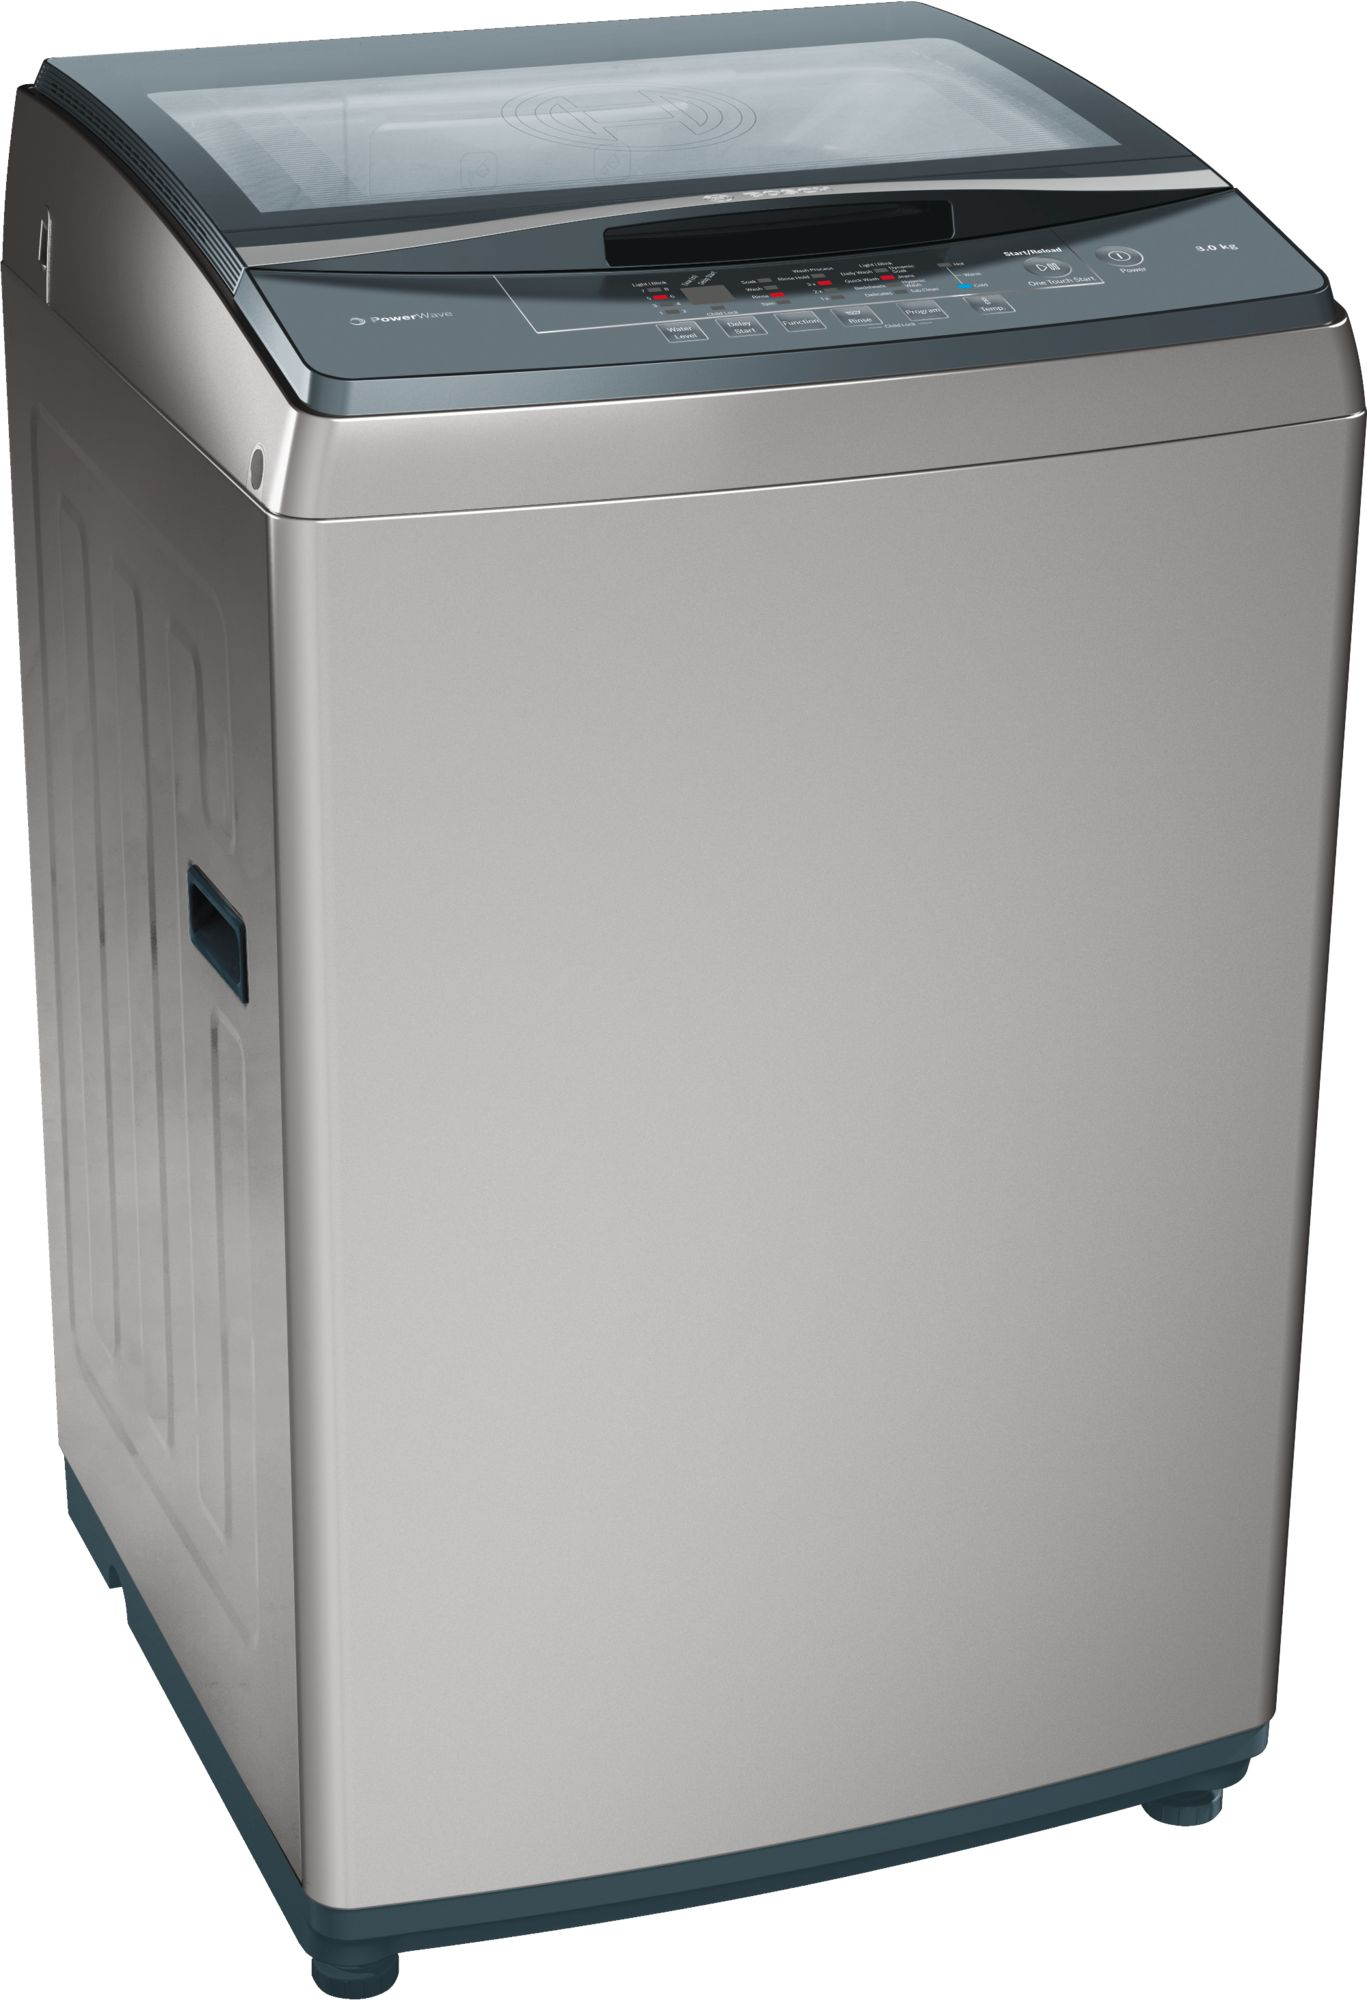 10 Best Washing Machines Under 15000 India 2019 (Reviews) 9